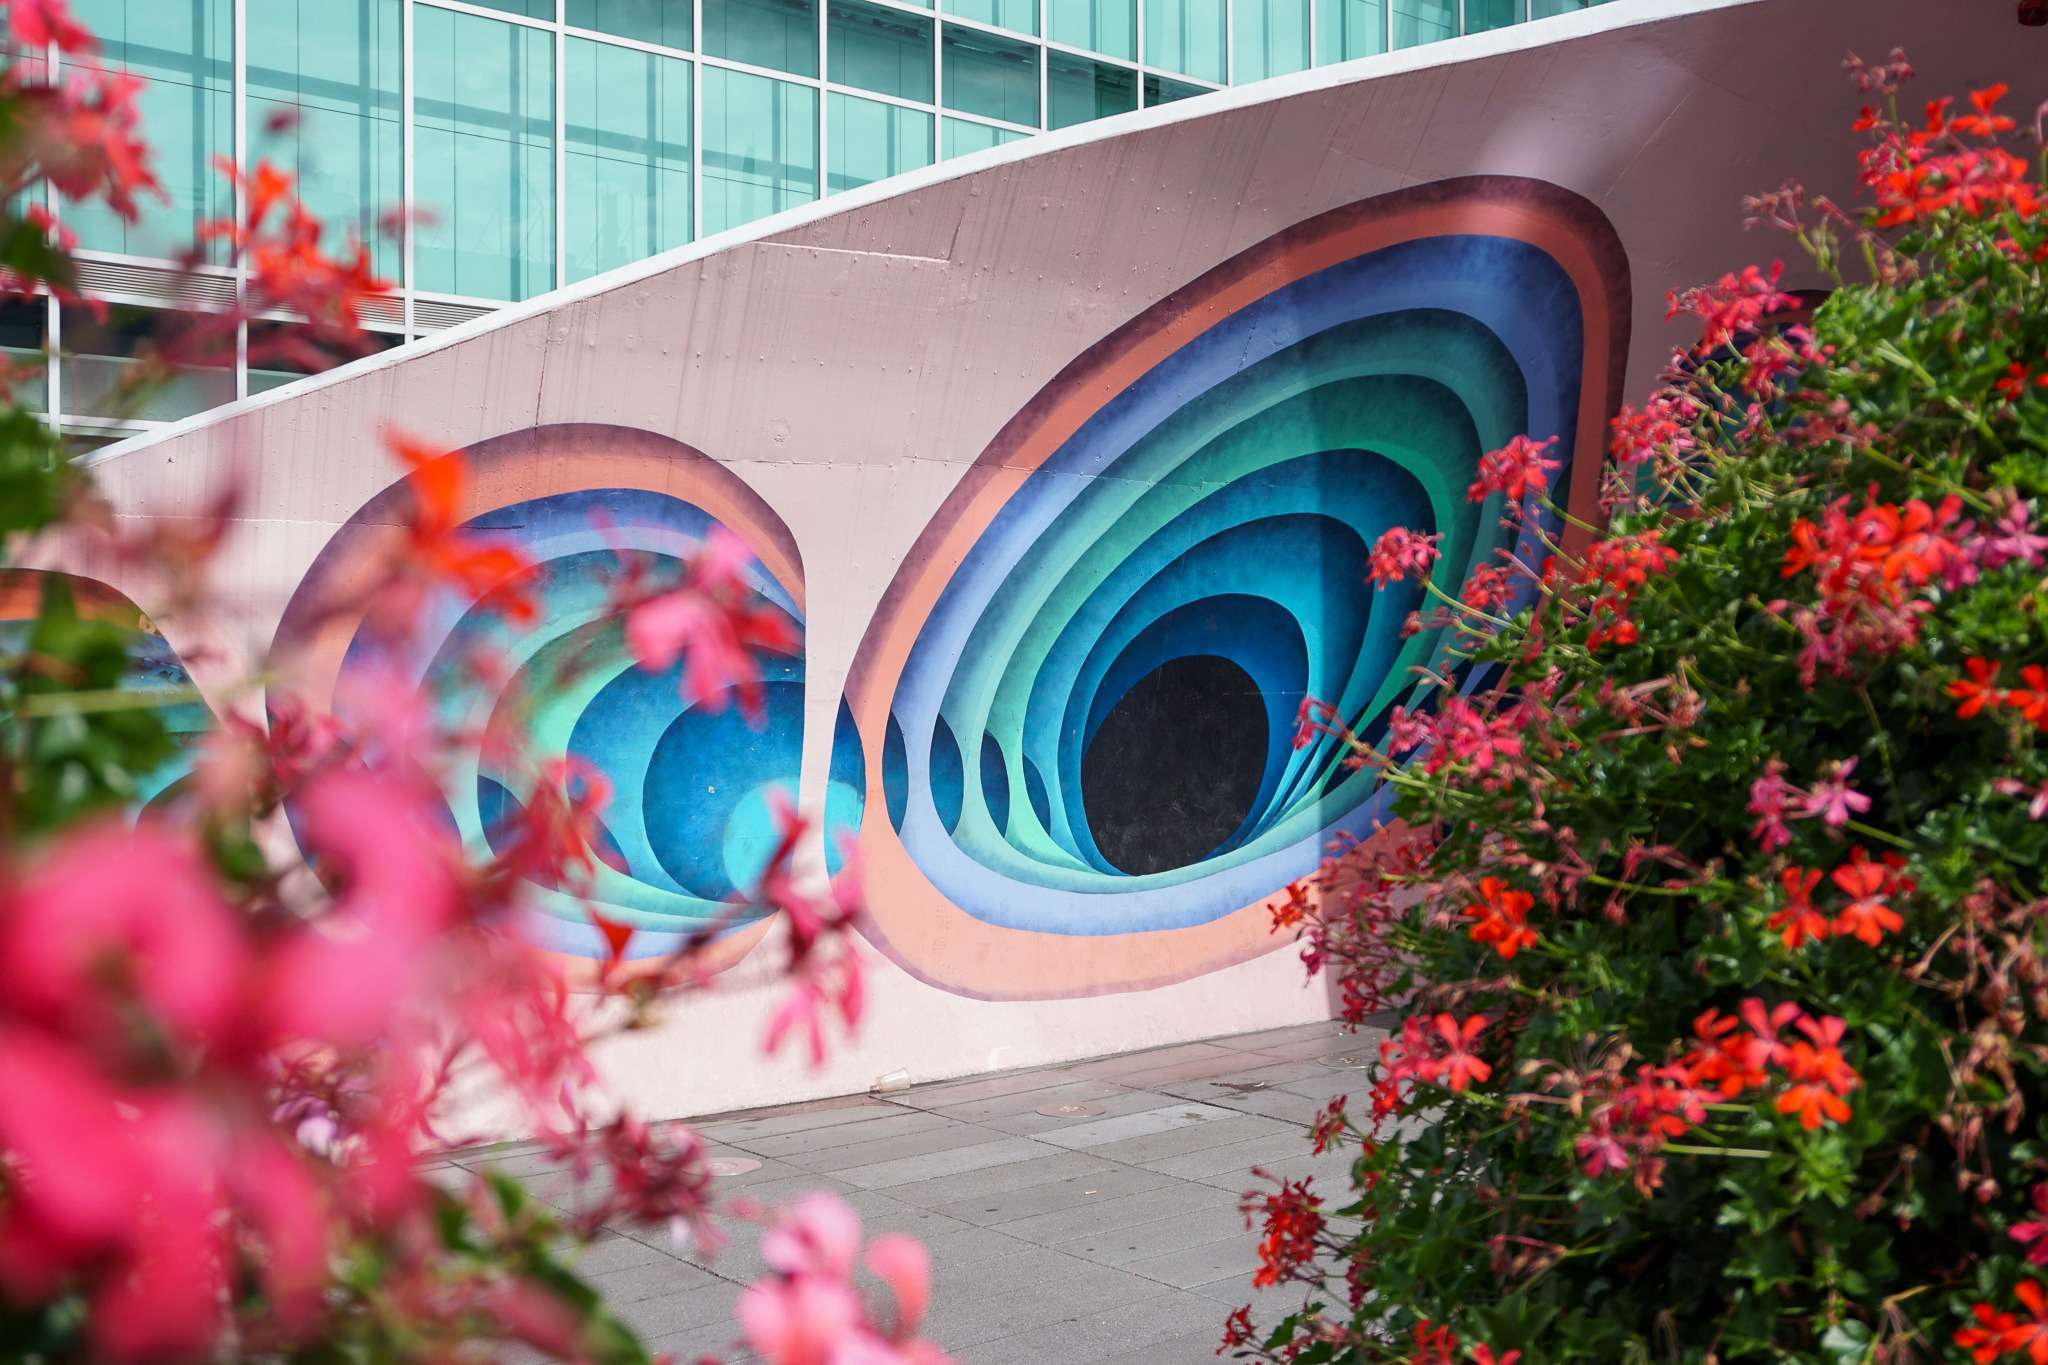 pink and blue patterned street art in Eindhoven city centre